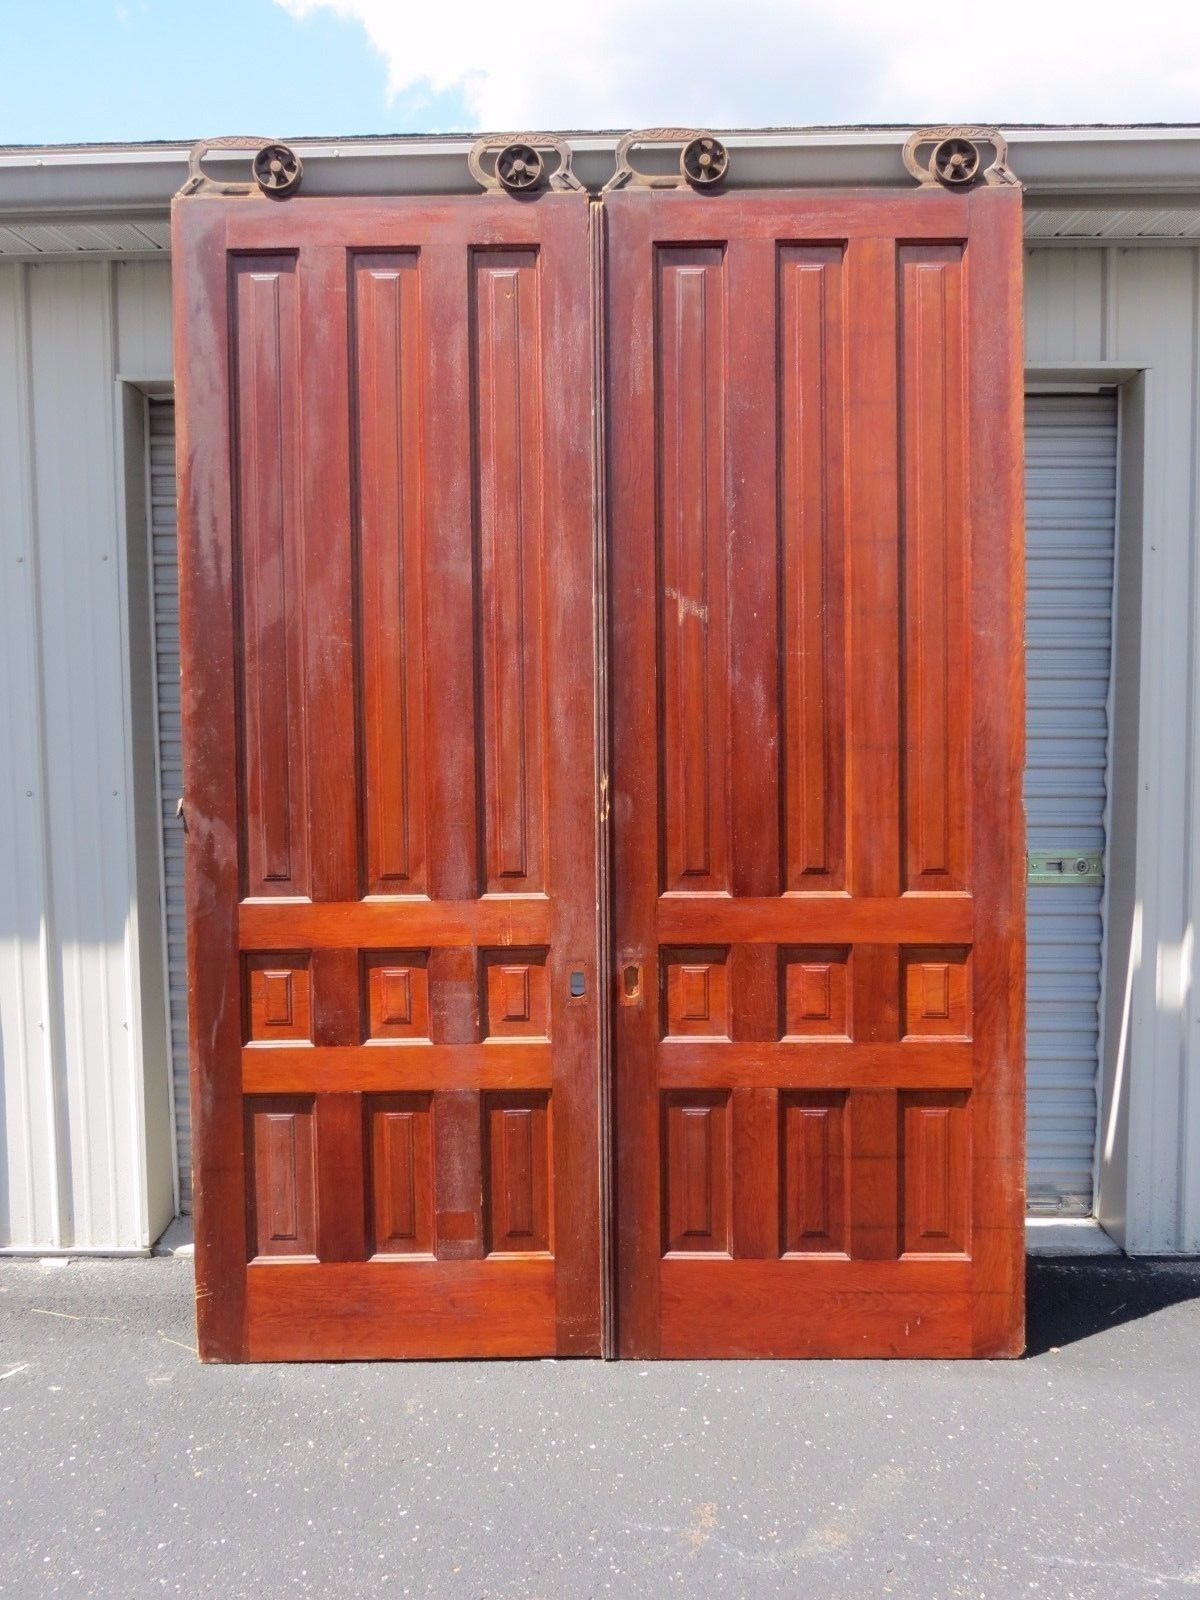 These Beautiful Salvaged Doors Come Complete With Their Original Top Rollers Amp Hardware Each O Interior Barn Doors Diy Sliding Pocket Doors Salvaged Doors